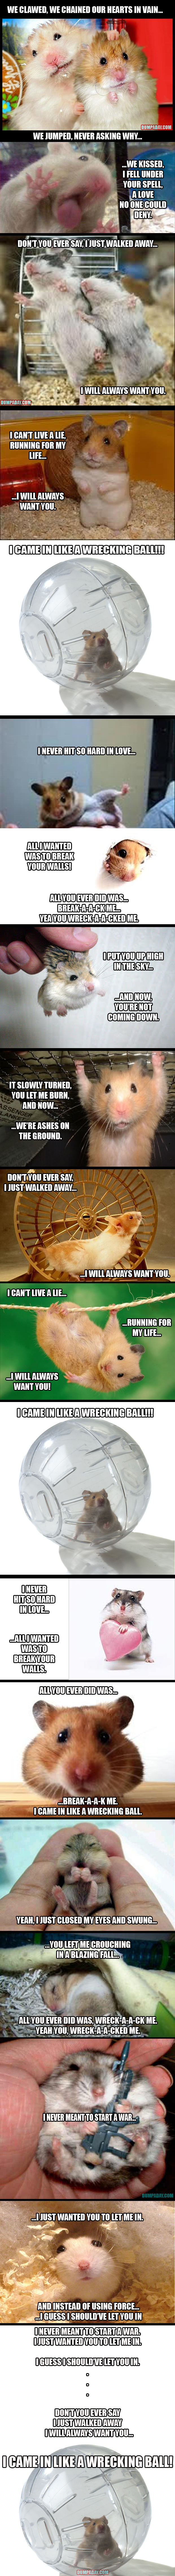 wrecking ball hamsters